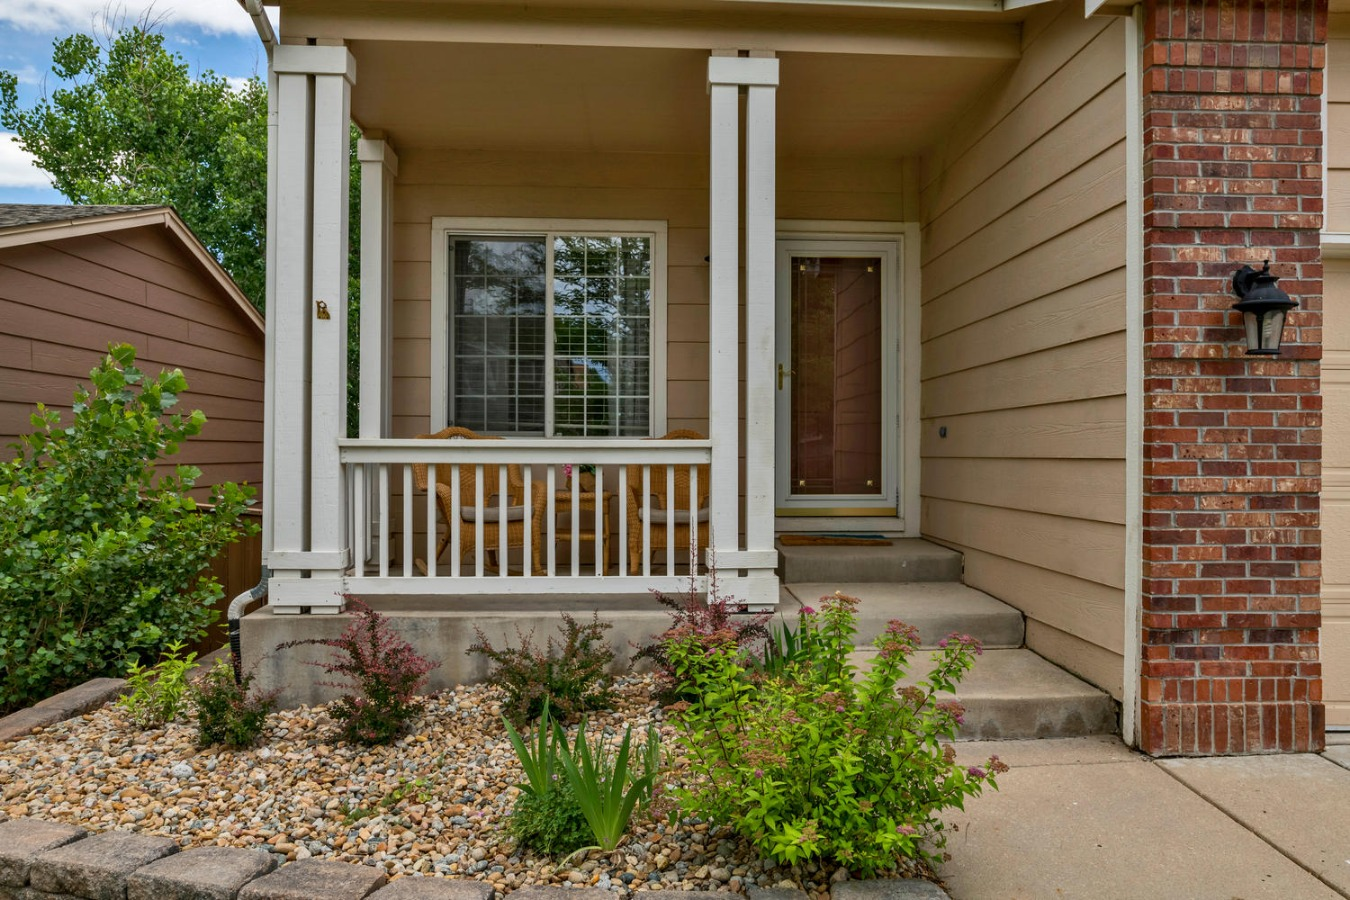 Covered Front Porch & Entry